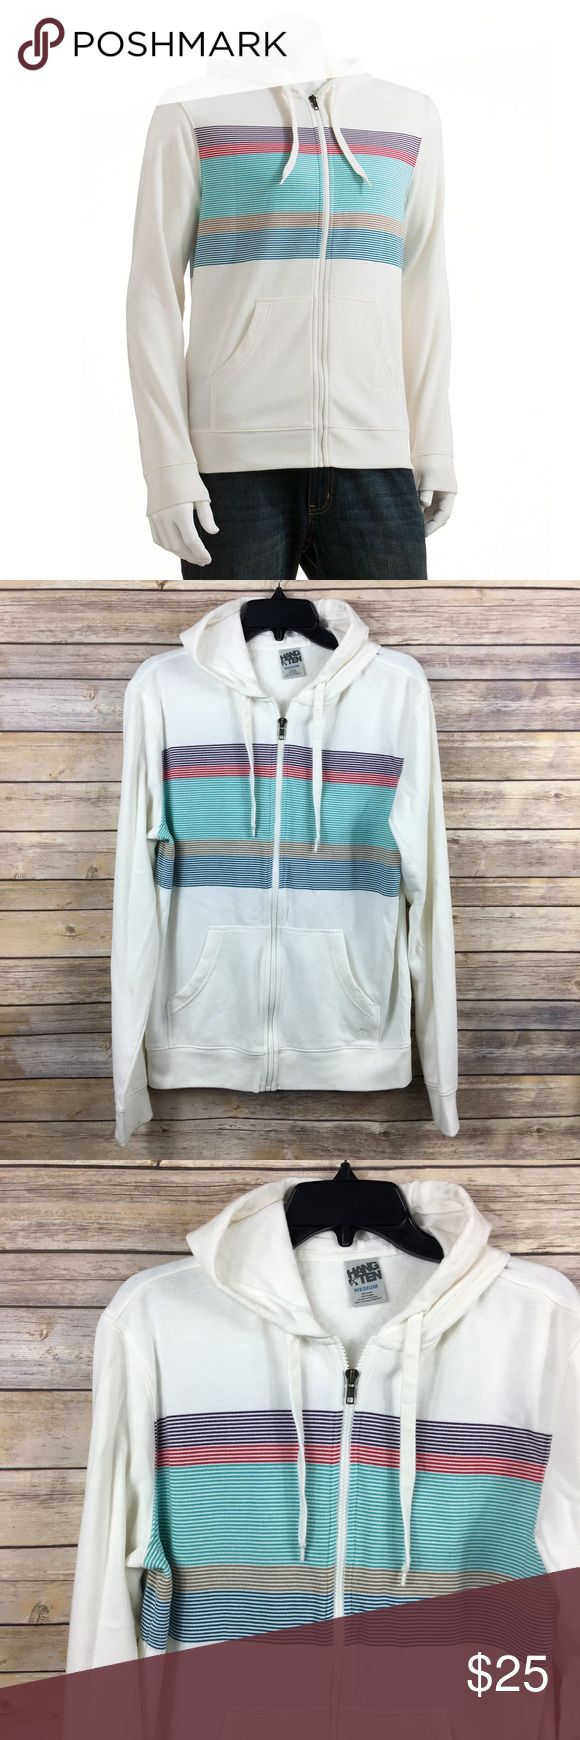 HANG TEN 10 Retro White Striped Rainbow Hoodie M HANG TEN 10 Retro White Striped  Rainbow Zip-Up  Fleece Hoodie  60% Cotton 40% Polyester  Size M Armpit to armpit 20 in Armpit to end of sleeve 22 in Shoulder to hem 27 in Thanks for visiting! Hang Ten Shirts Sweatshirts & Hoodies